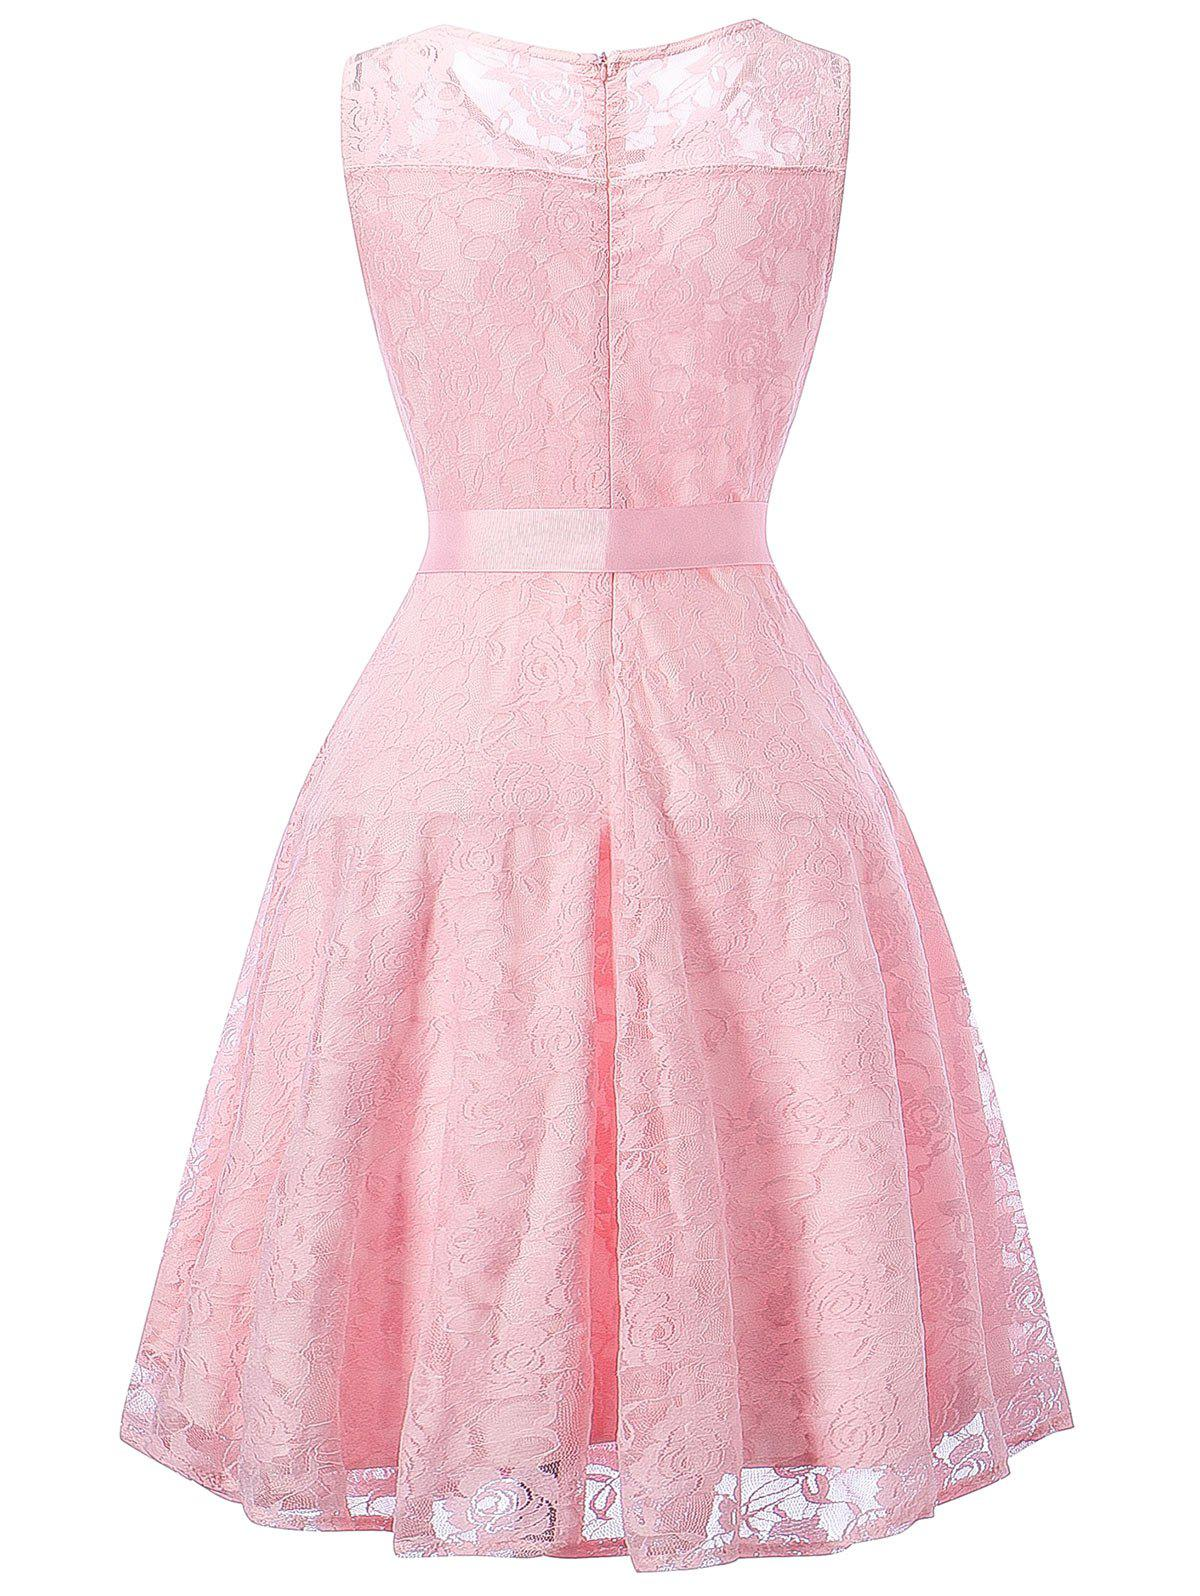 Sleeveless Lace Swing Dress - PINK M